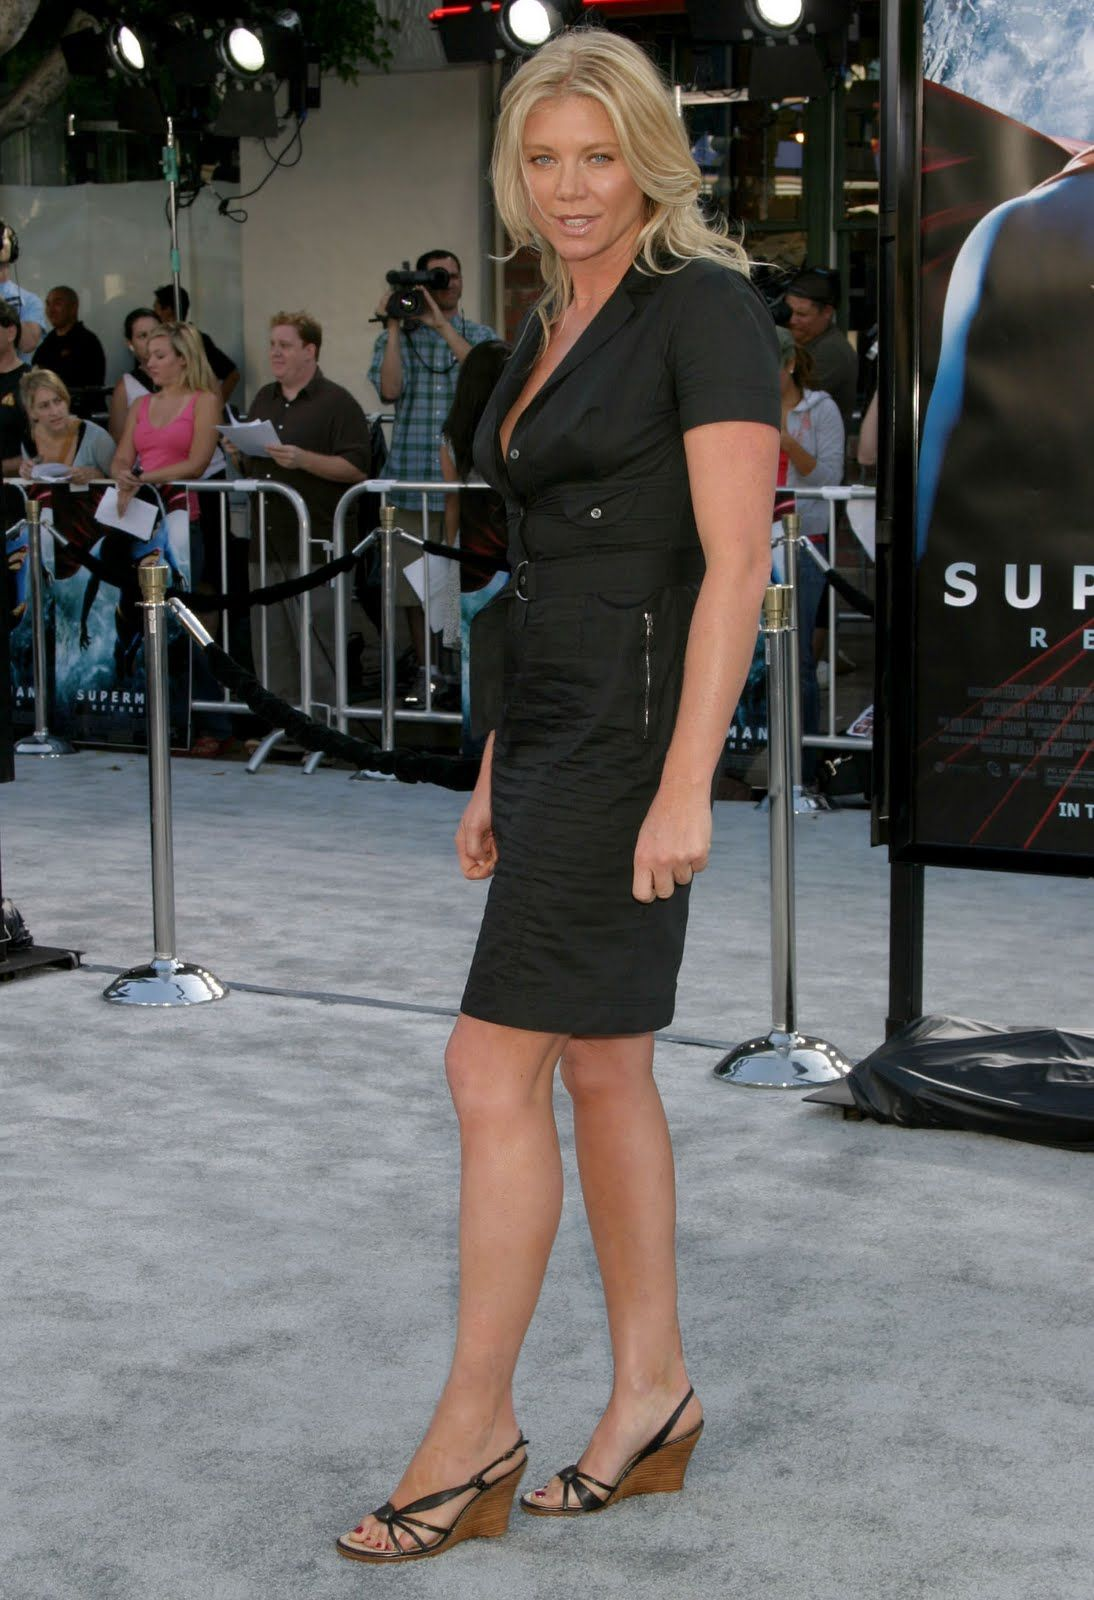 peta wilson photos | peta wilson legs peta wilson toes ...